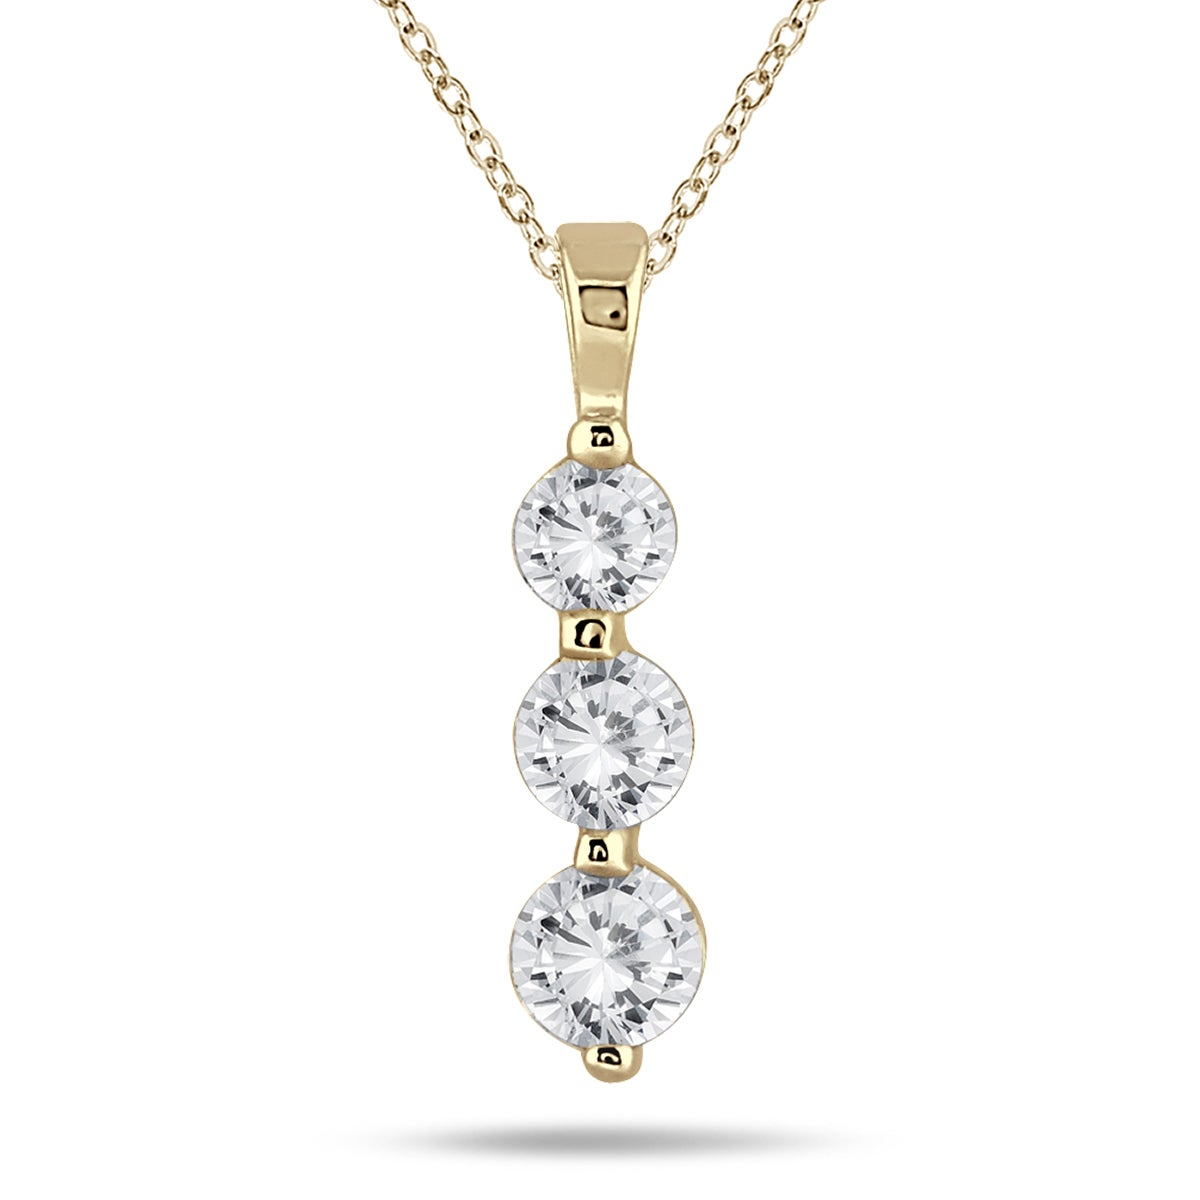 round prong necklace p inch graduated ct tennis diamond product necklaces c